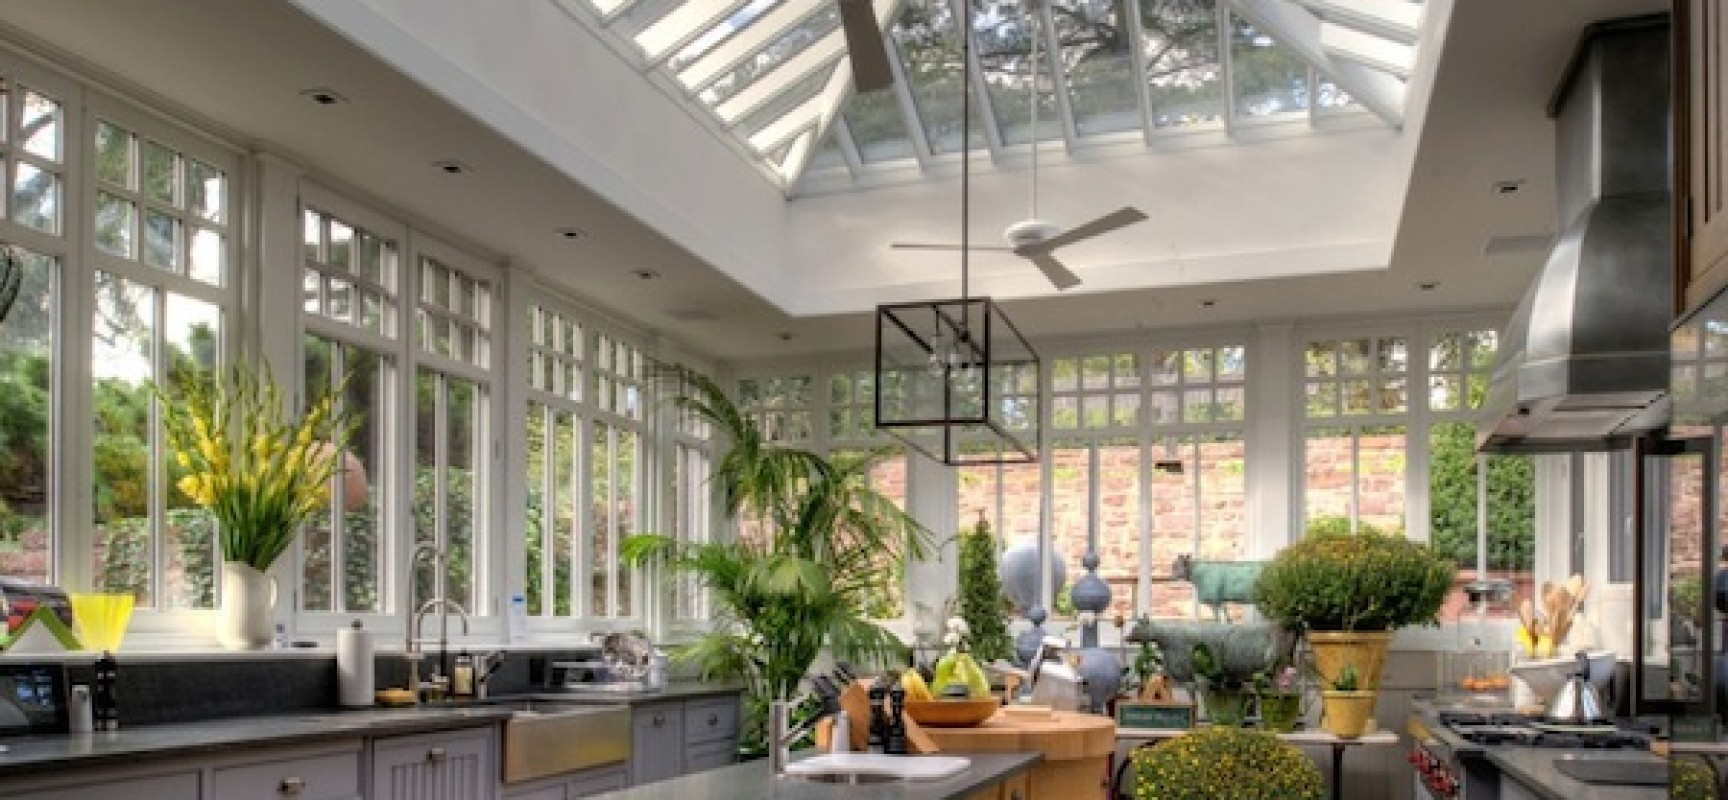 Kitchen Conservatory Take Your Kitchen To The Conservatory Inreads